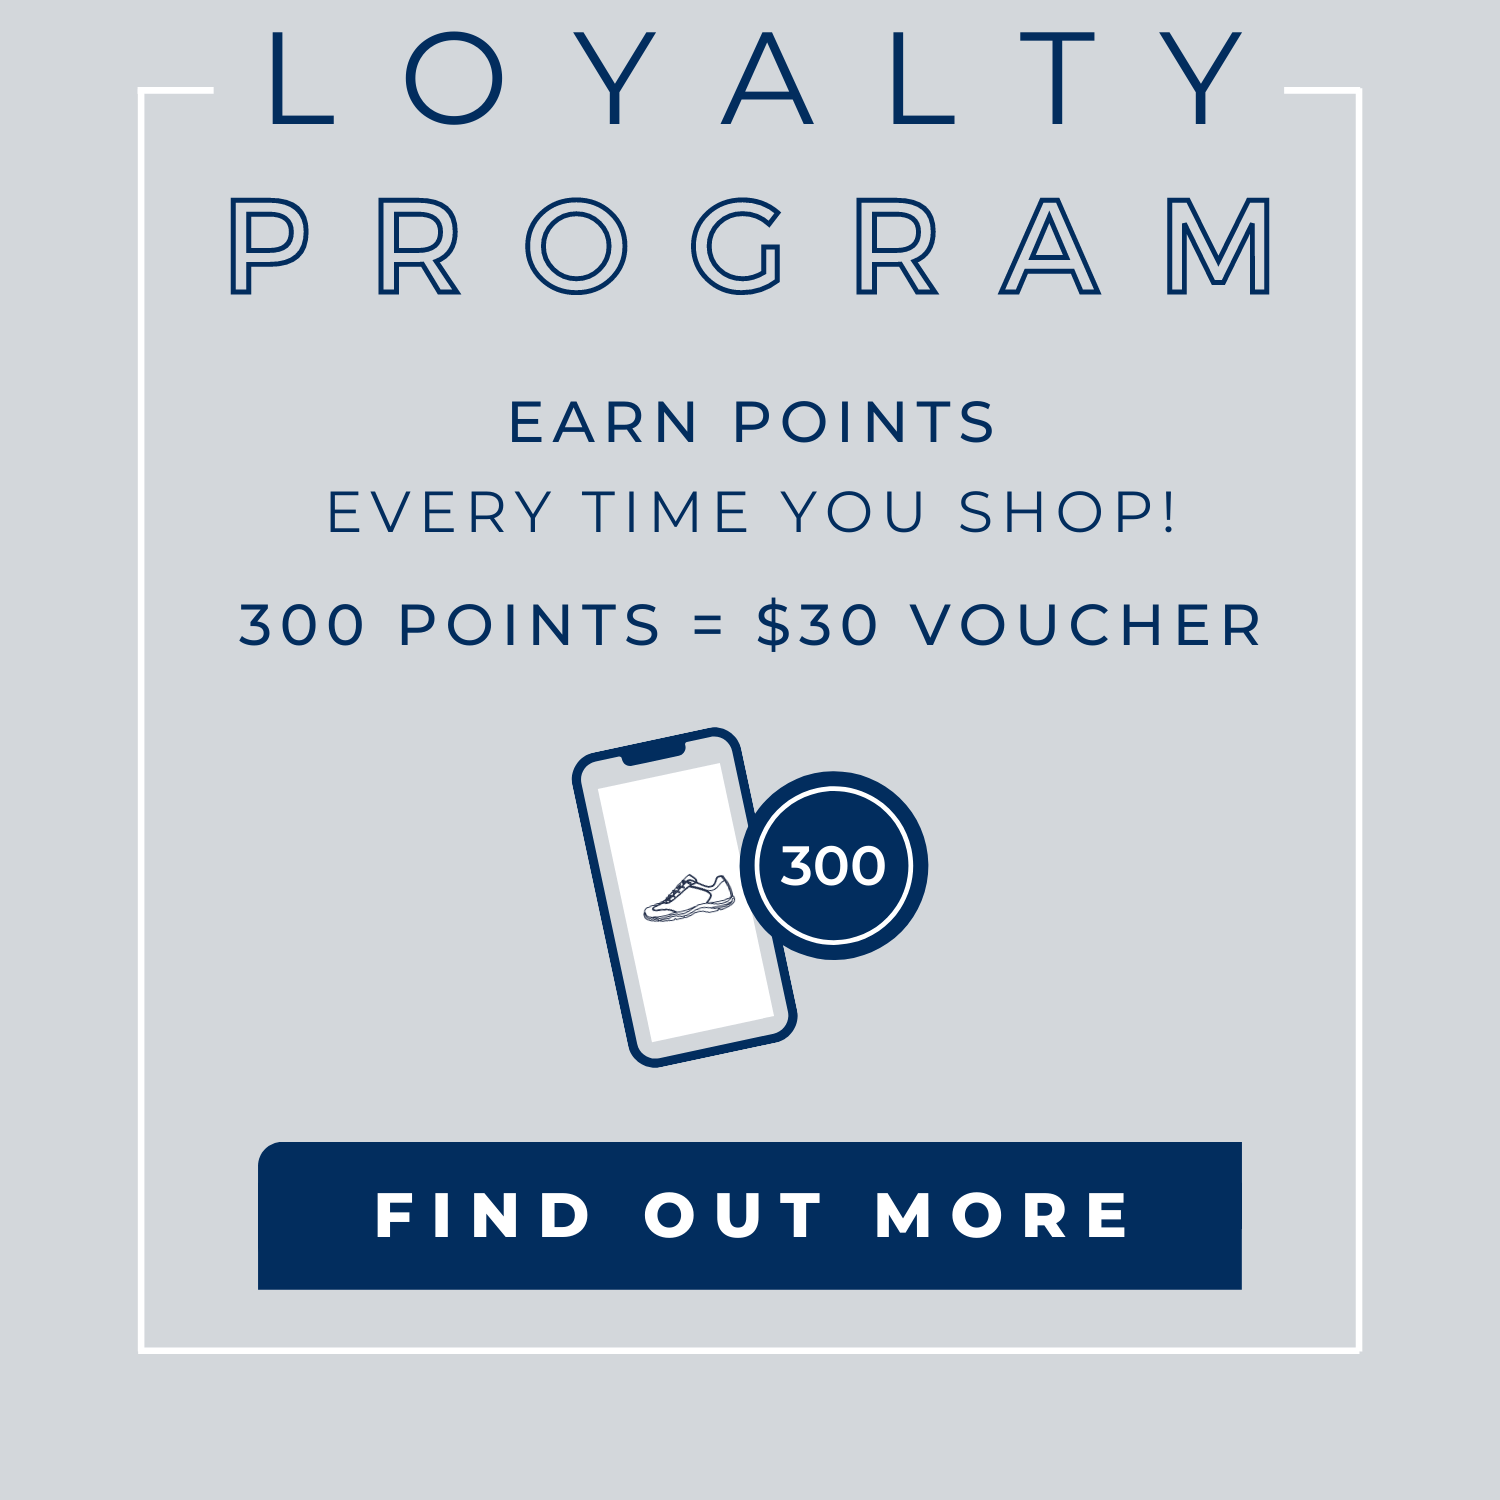 Loyalty_Program_Wesbite_Banner_Mobile_1500_x_1500.png